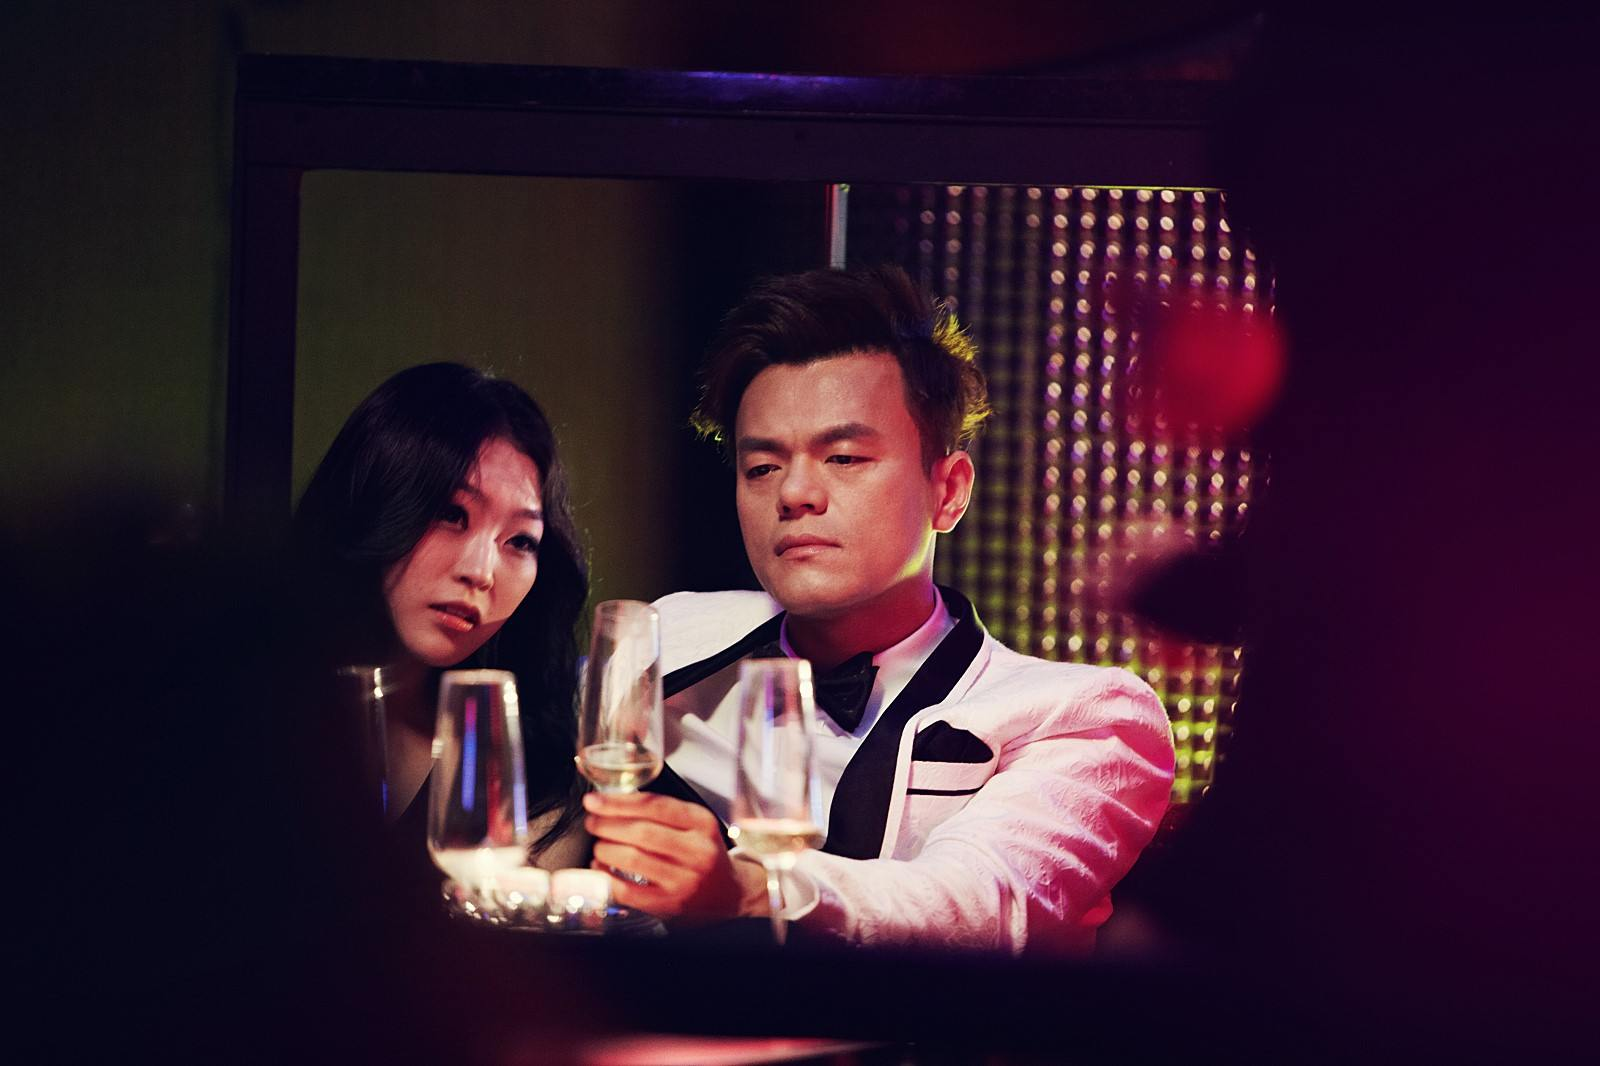 jyp no dating rule The post contained screen captures from a previous television appearance where he talked about jyp entertainment's dating ban  but no one kept the rule,.